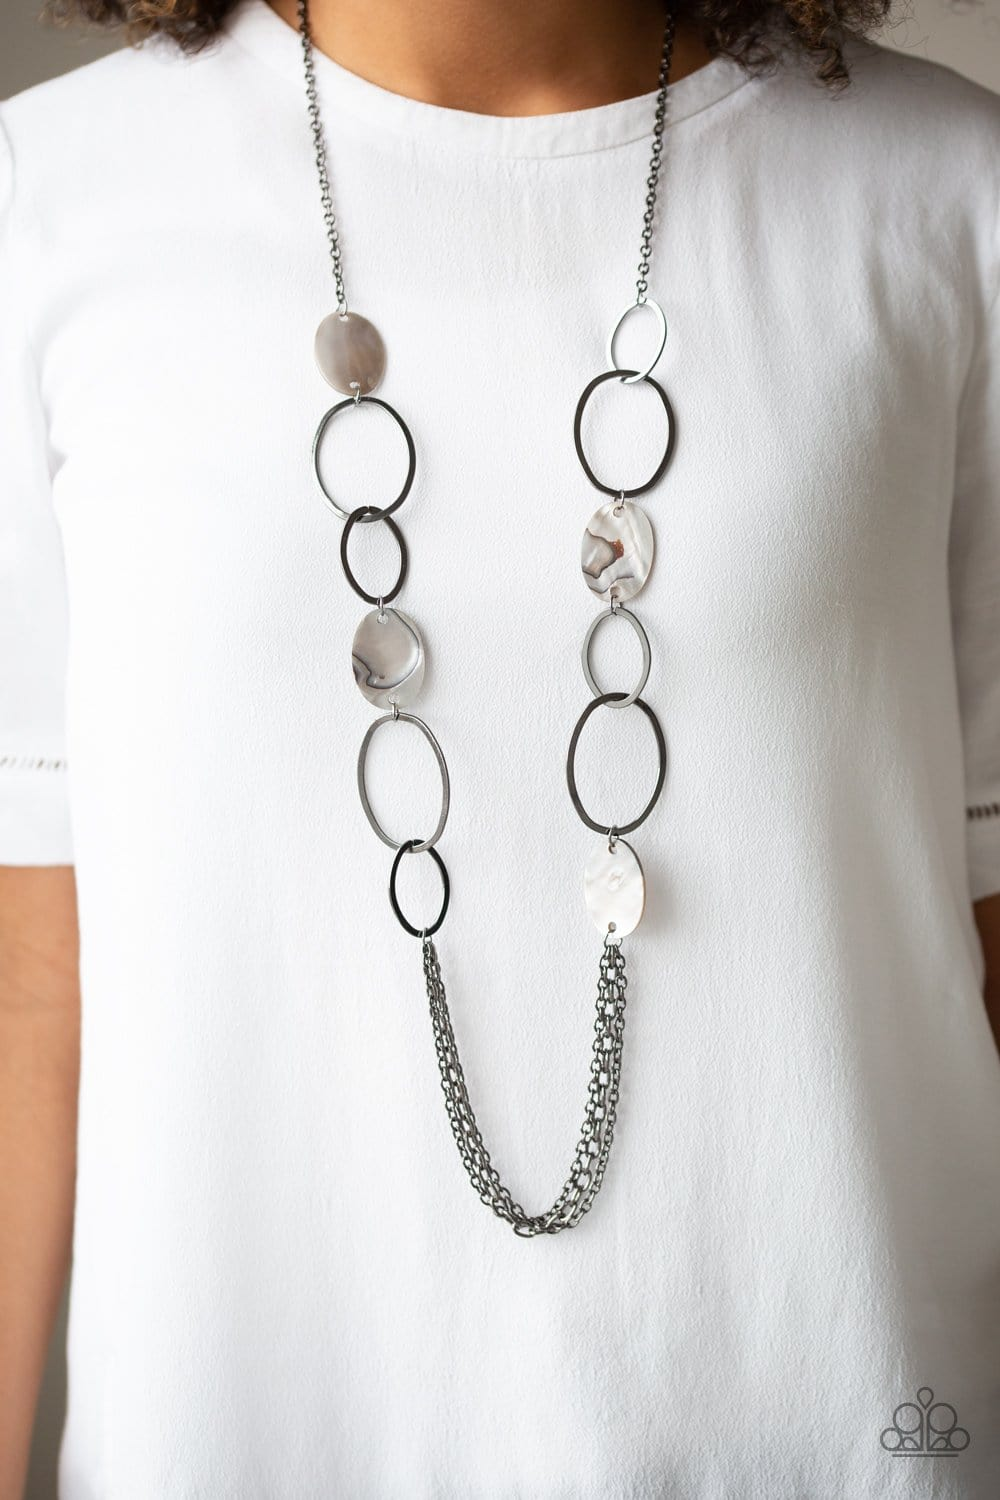 Paparazzi: Kaleidoscope Coasts - Black Chain Necklace - Jewels N' Thingz Boutique